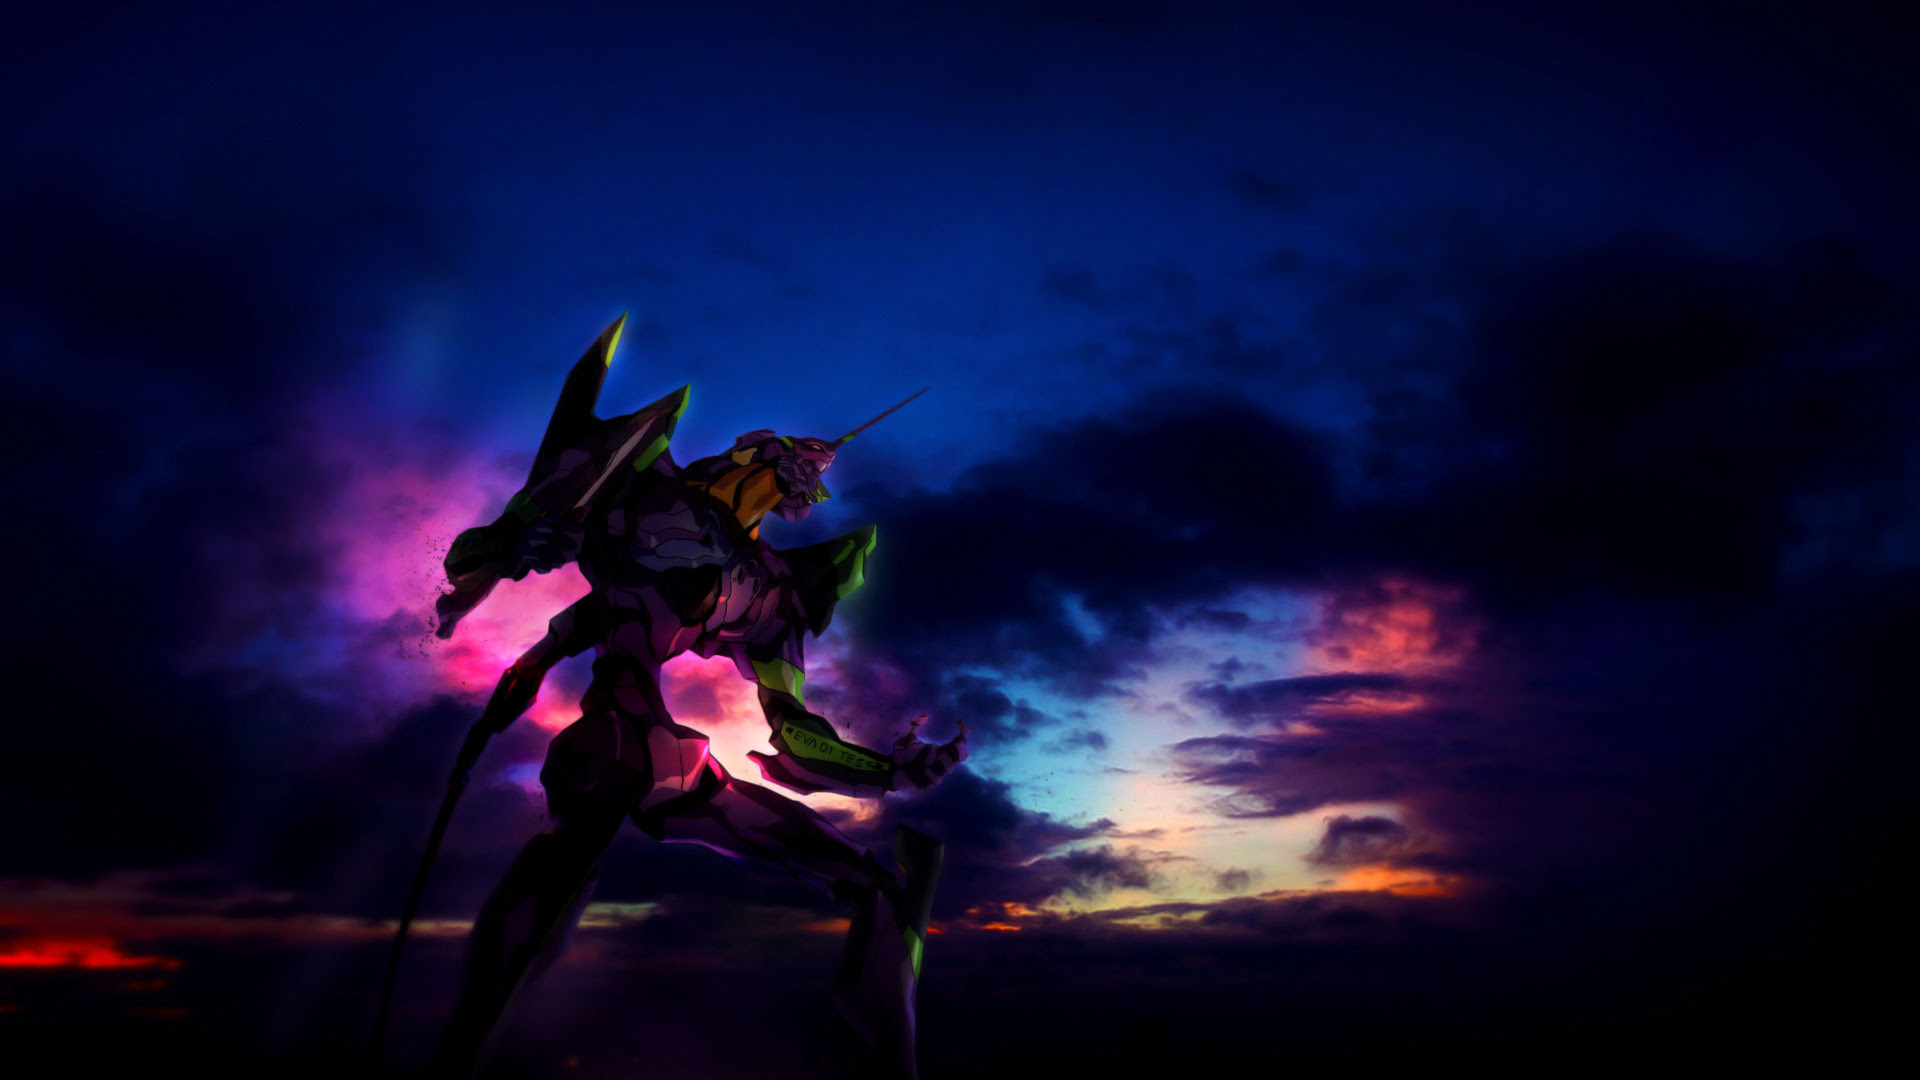 Evangelion Hd Wallpapers 77 Images